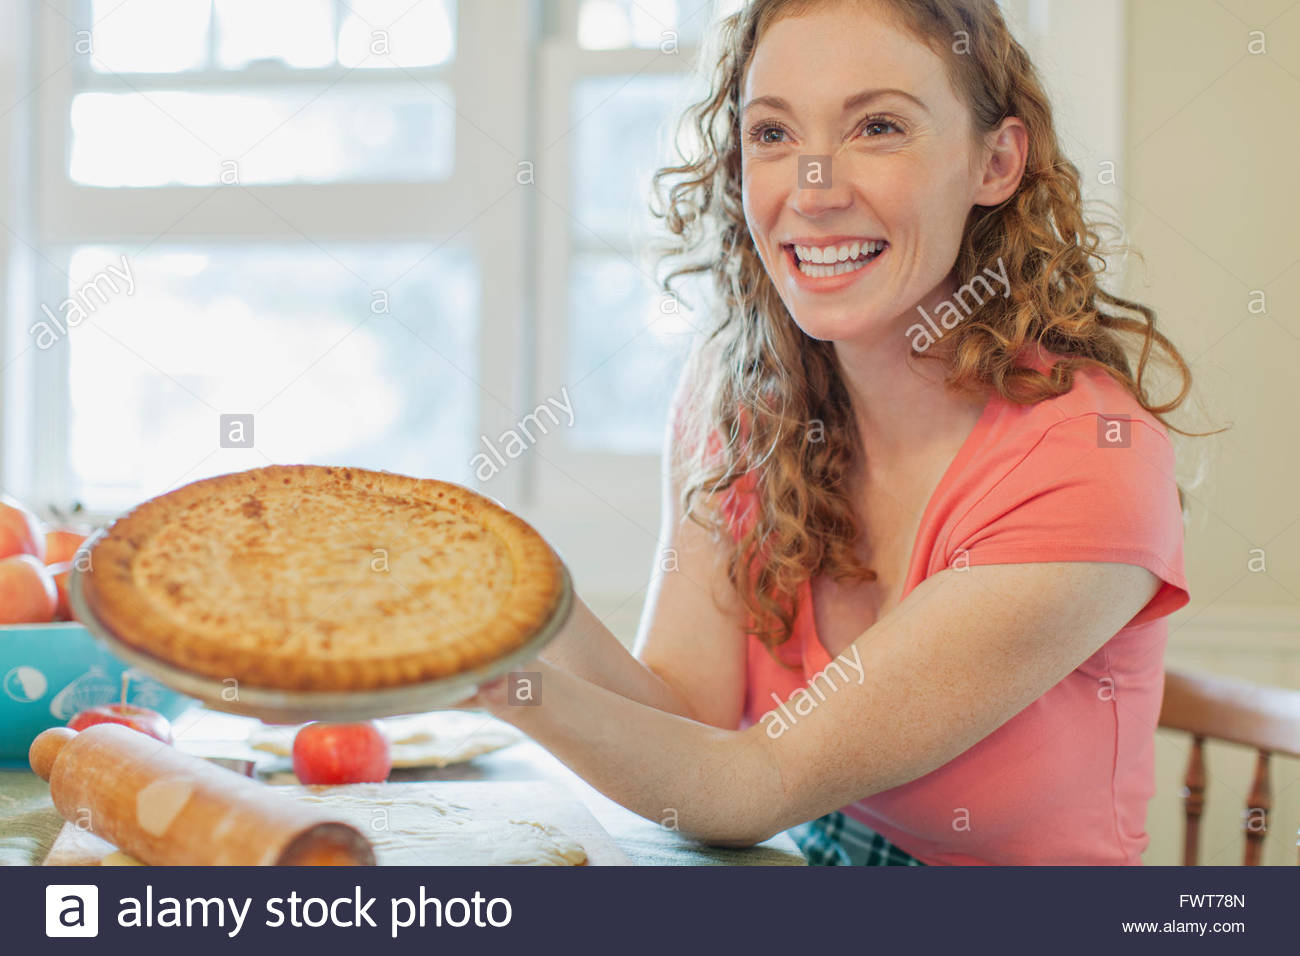 Mid adult woman showing off homemade pie. - Stock Image